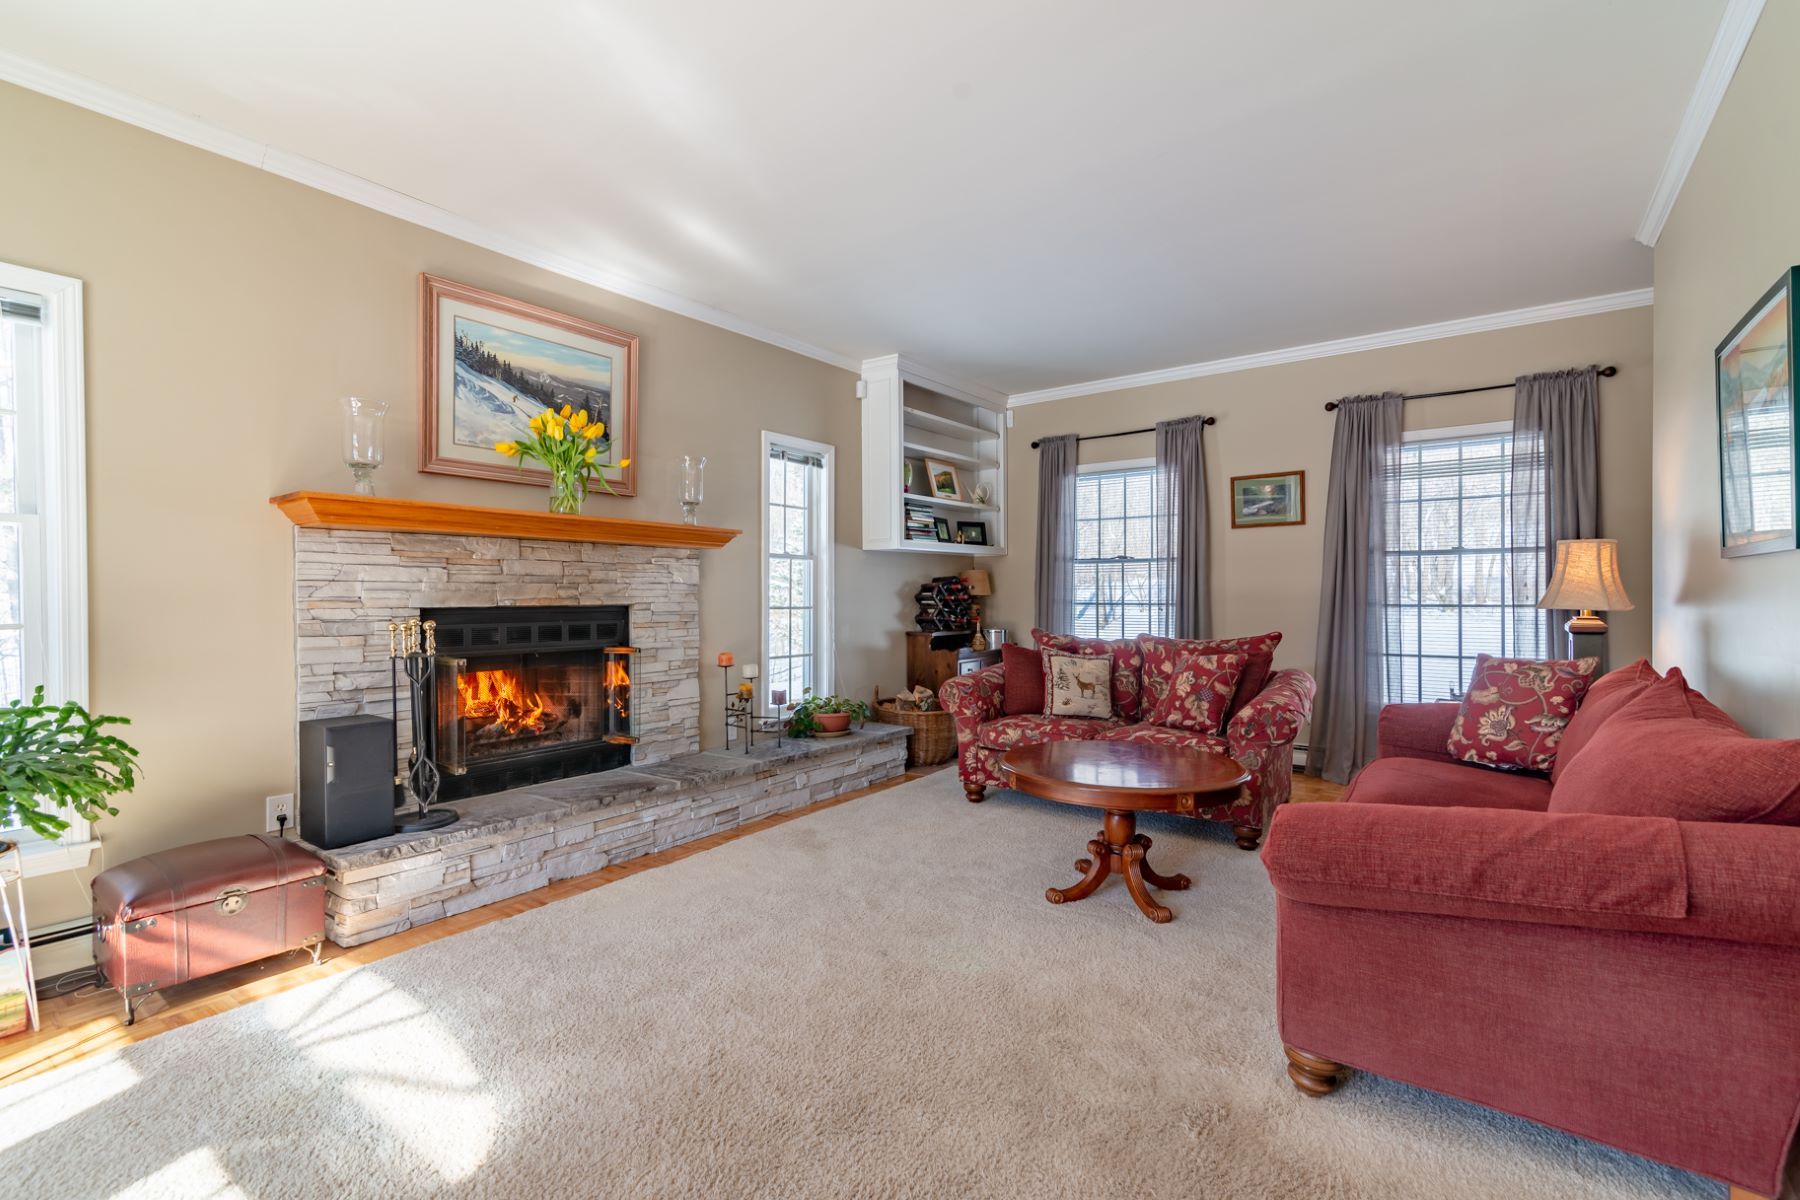 Single Family Homes for Sale at Privacy with Mountain Views 146 Rabbit Run Arlington, Vermont 05250 United States